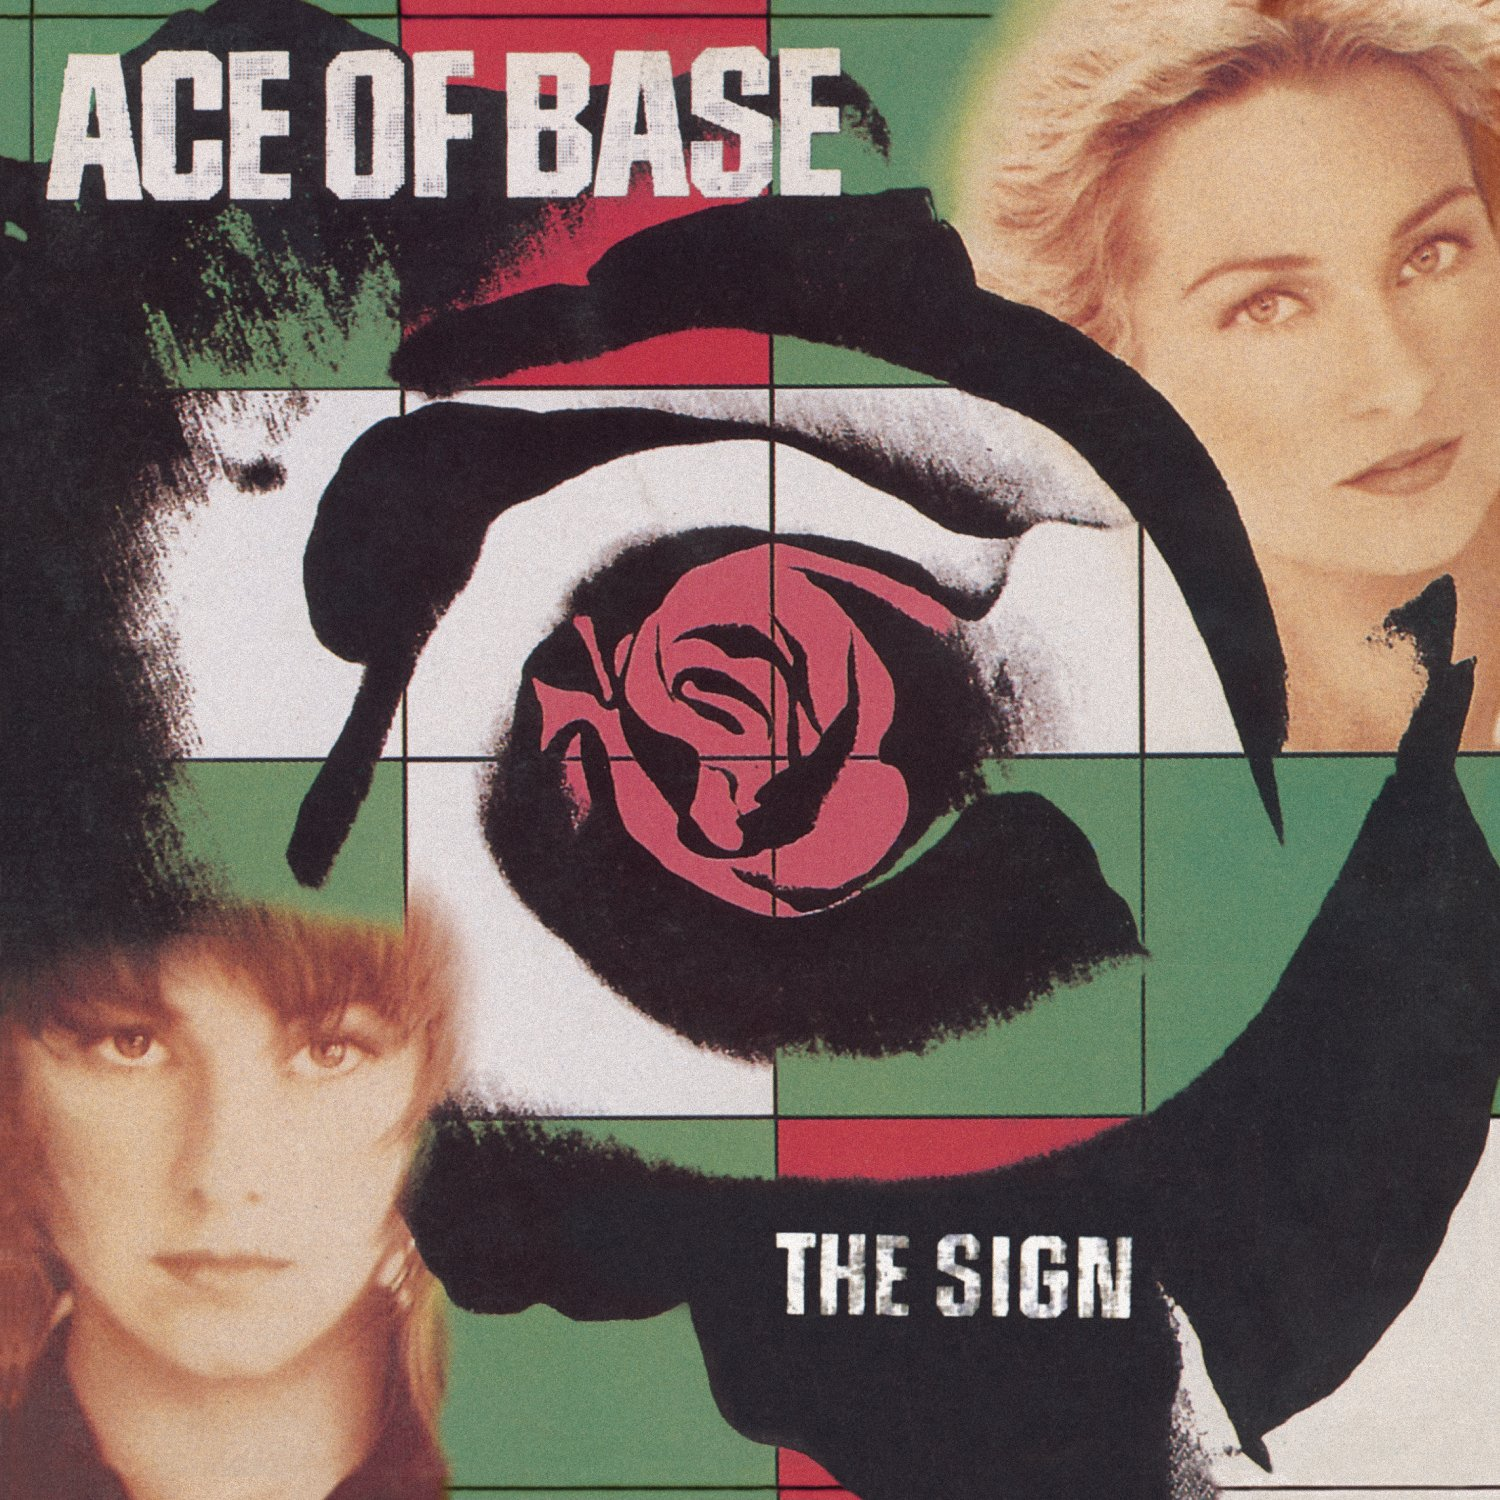 Vinilo : Ace of Base - The Sign (LP Vinyl)